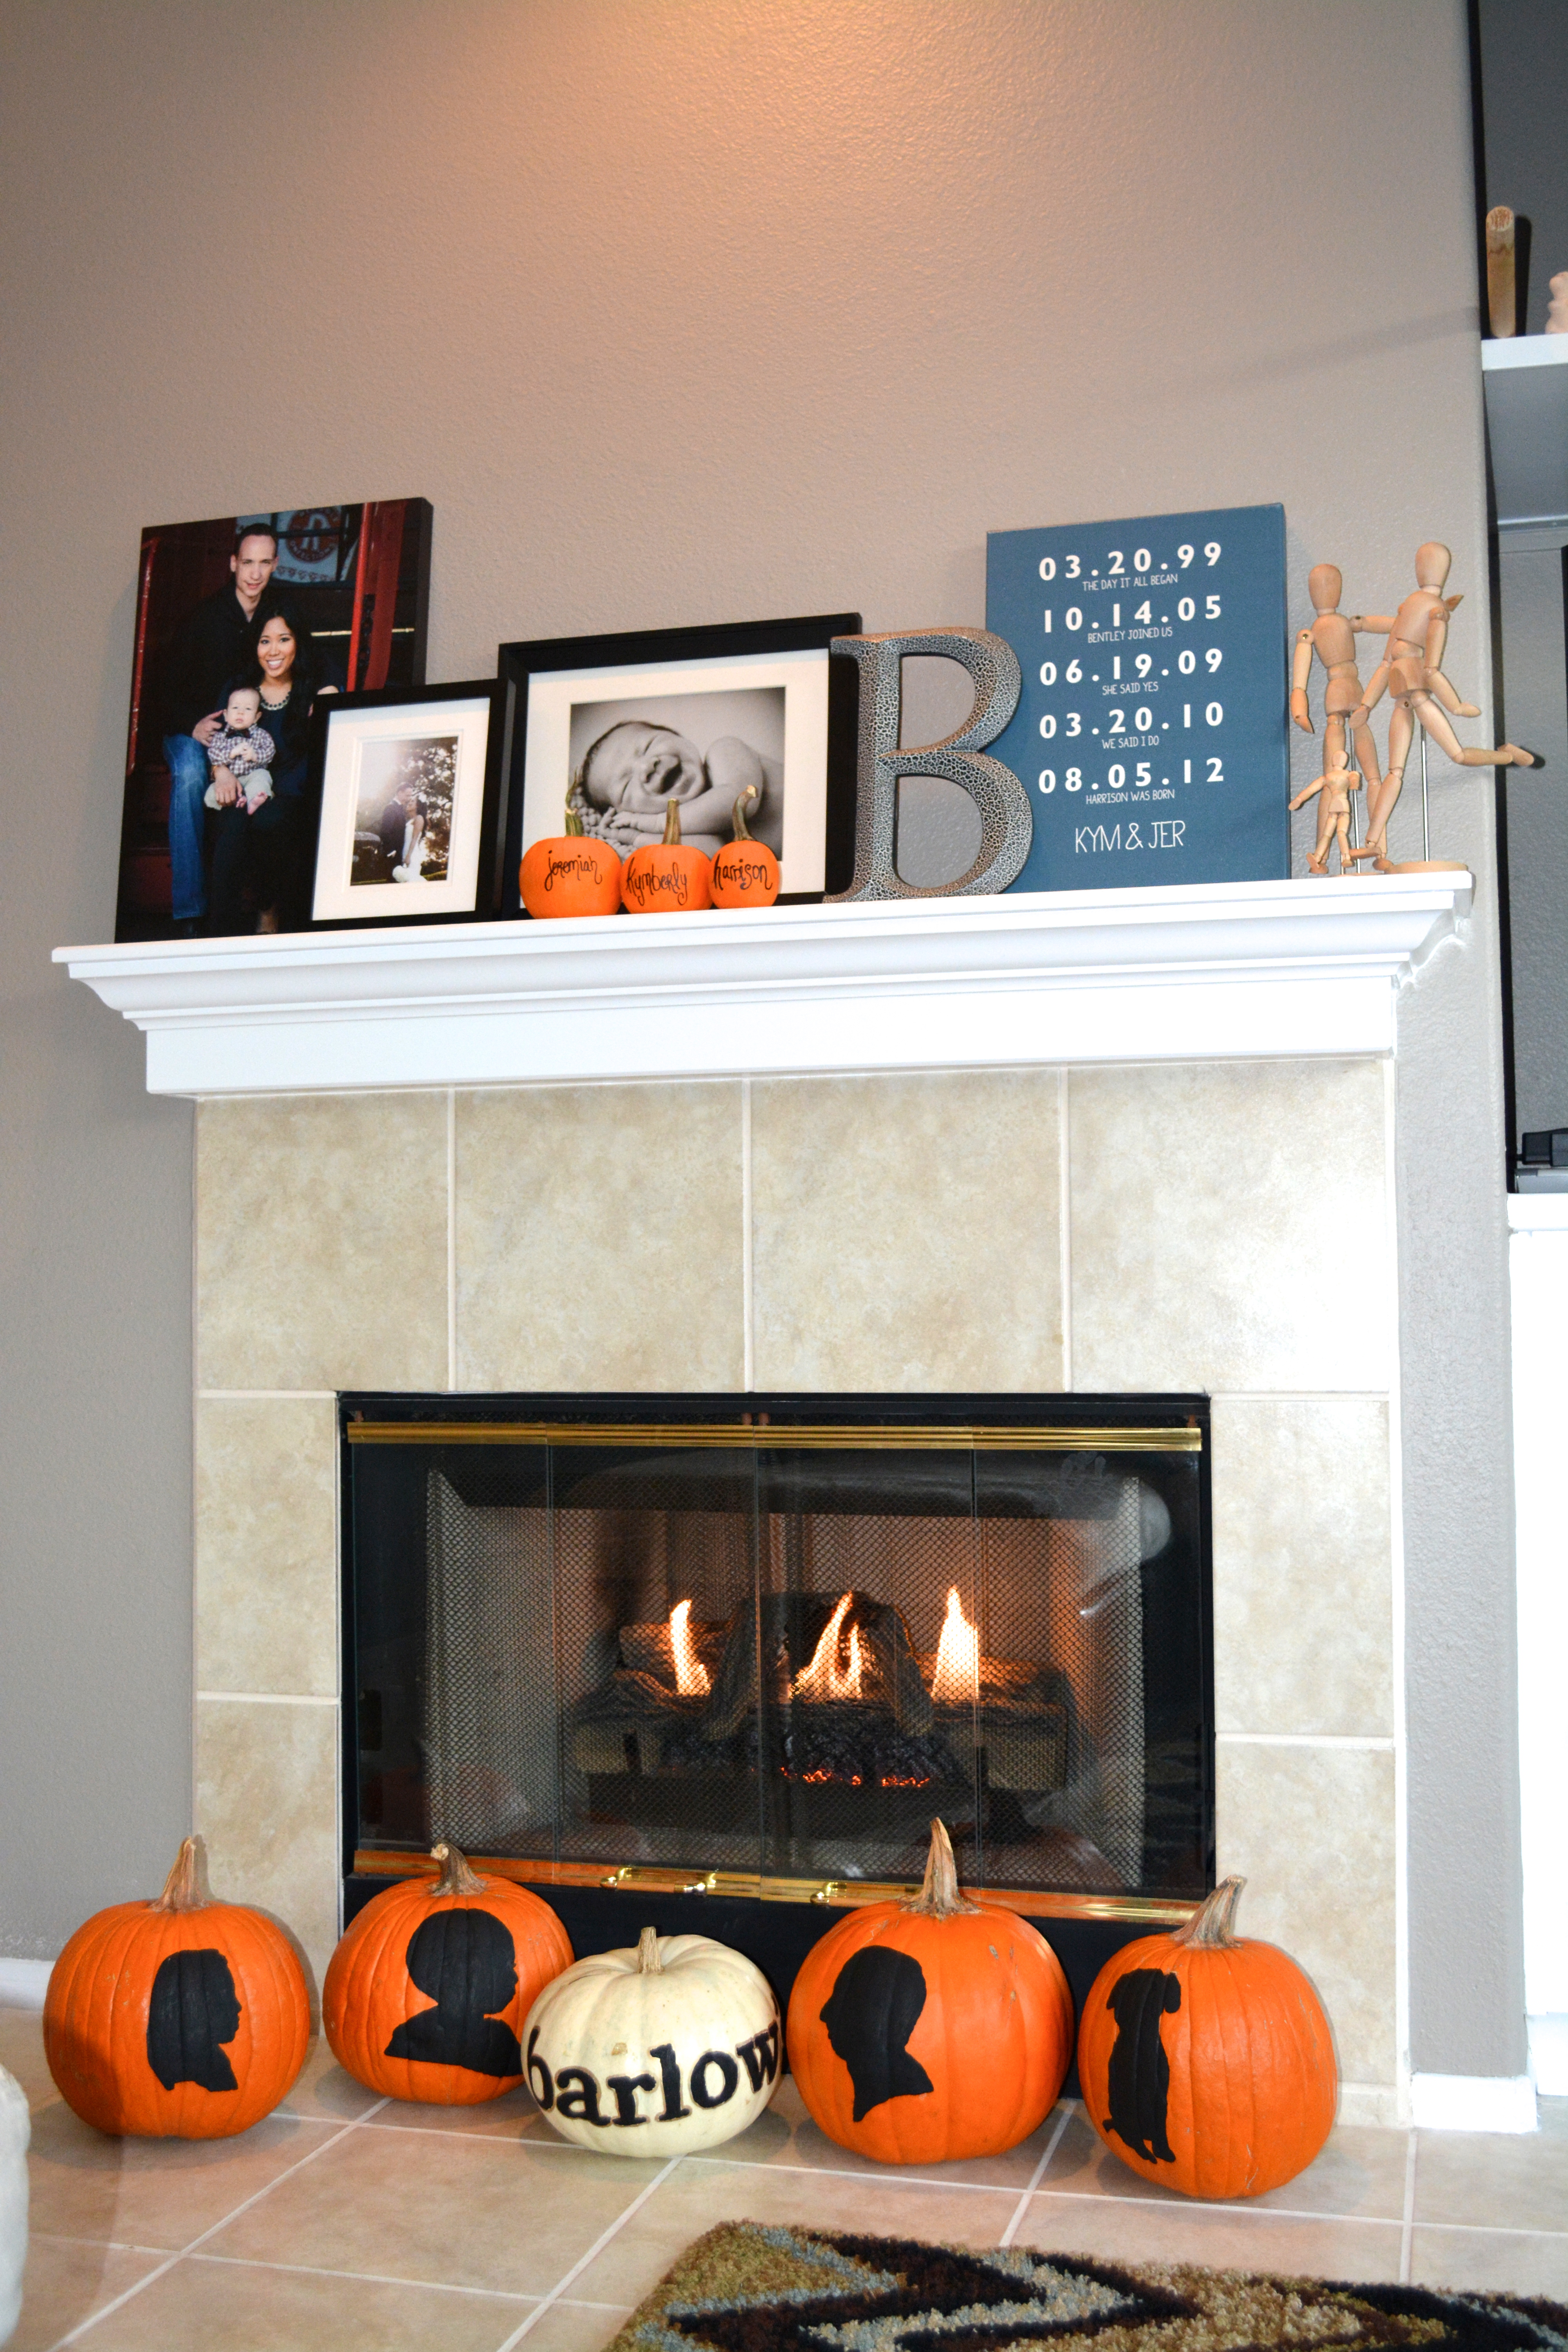 pumpkin decoration on mantel